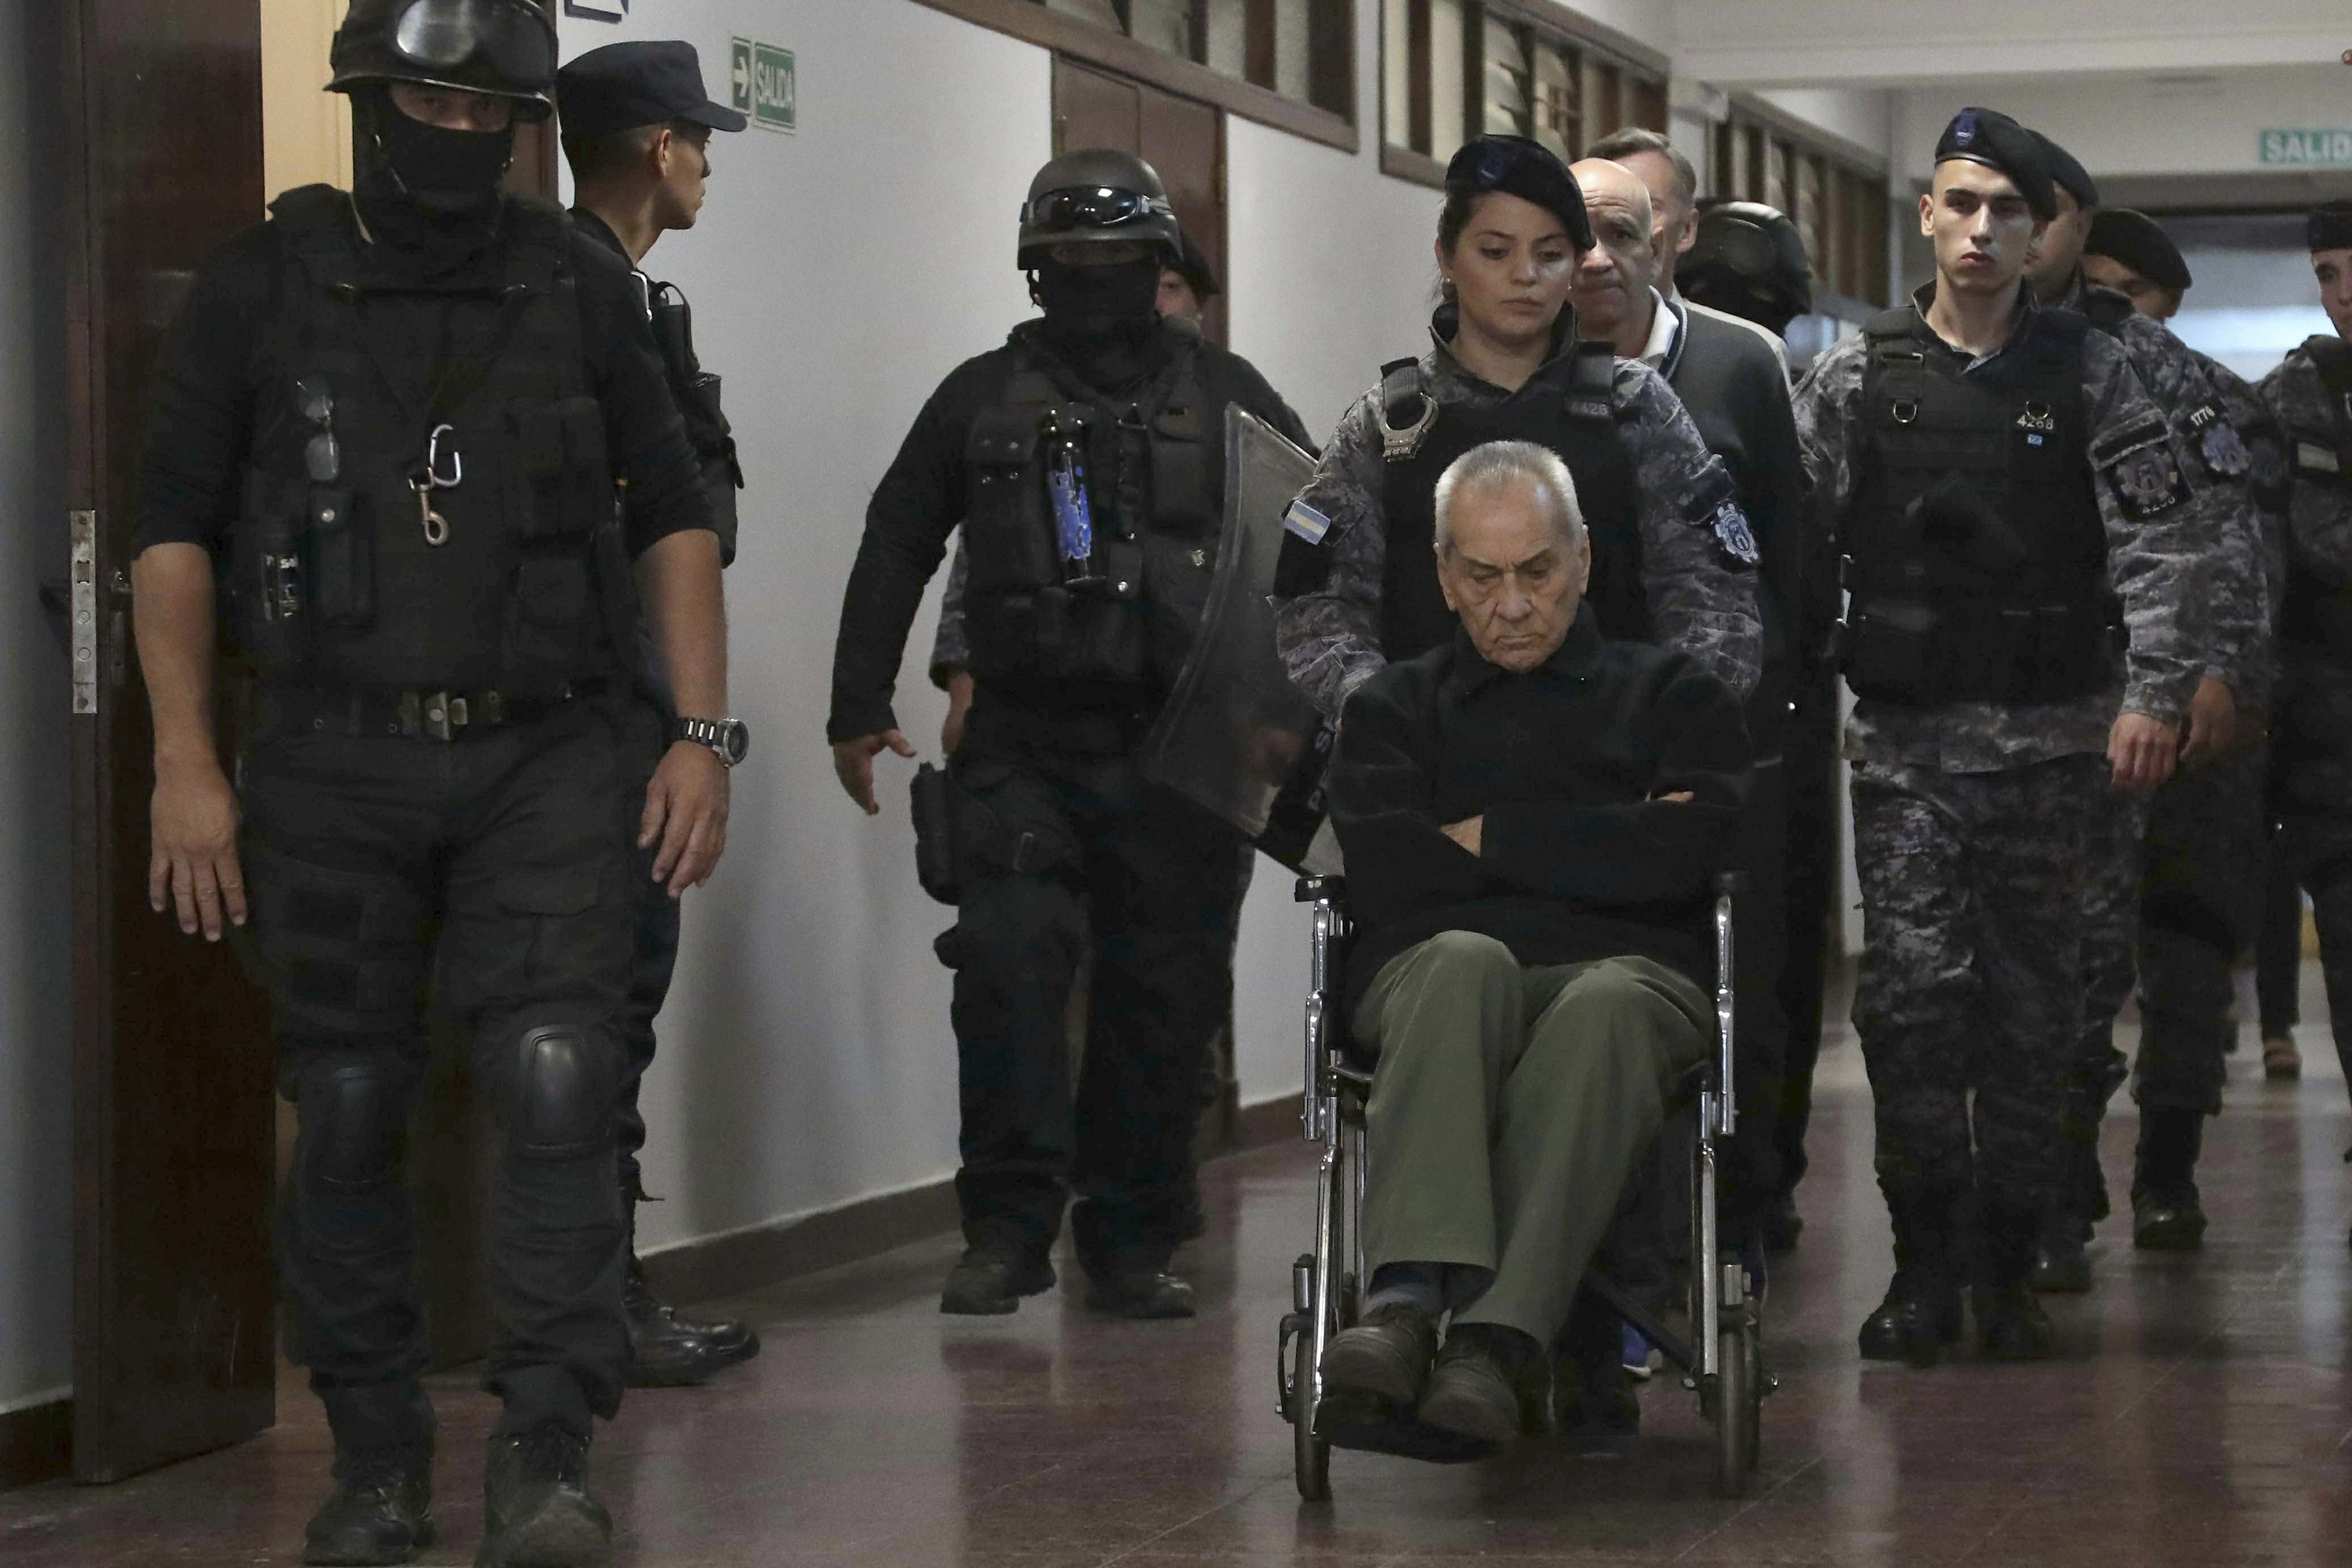 <b>Priests guilty of abusing deaf children at Argentine school</b>